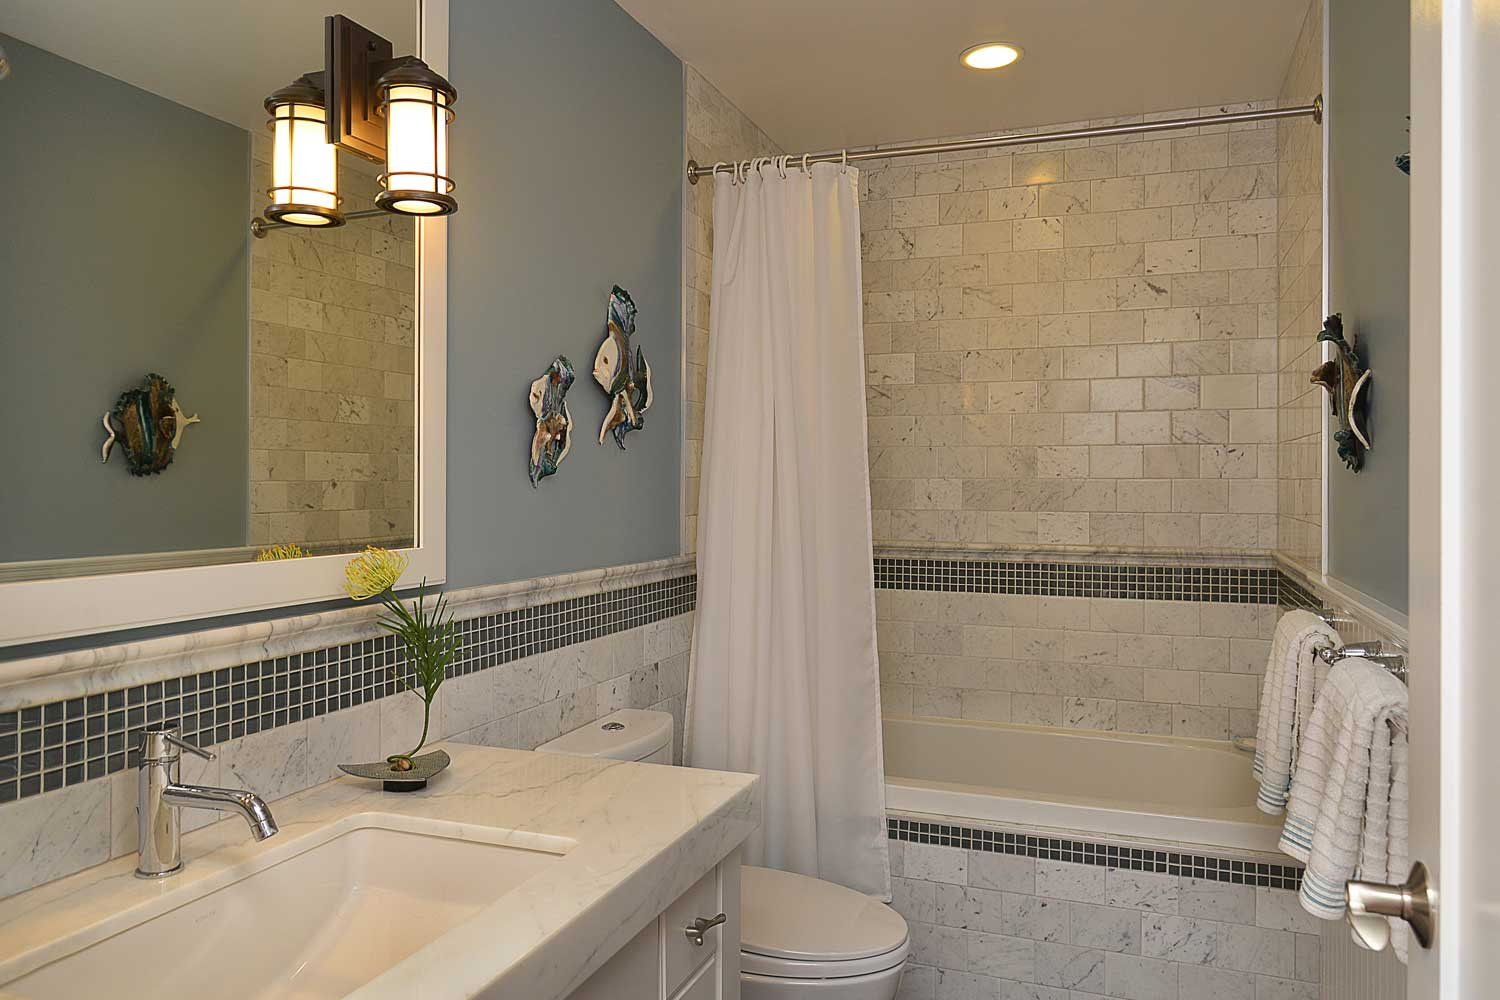 A white tiled bathroom with a sink, shower, and tub connected to one of the bedrooms in this 4-bed house to rent.